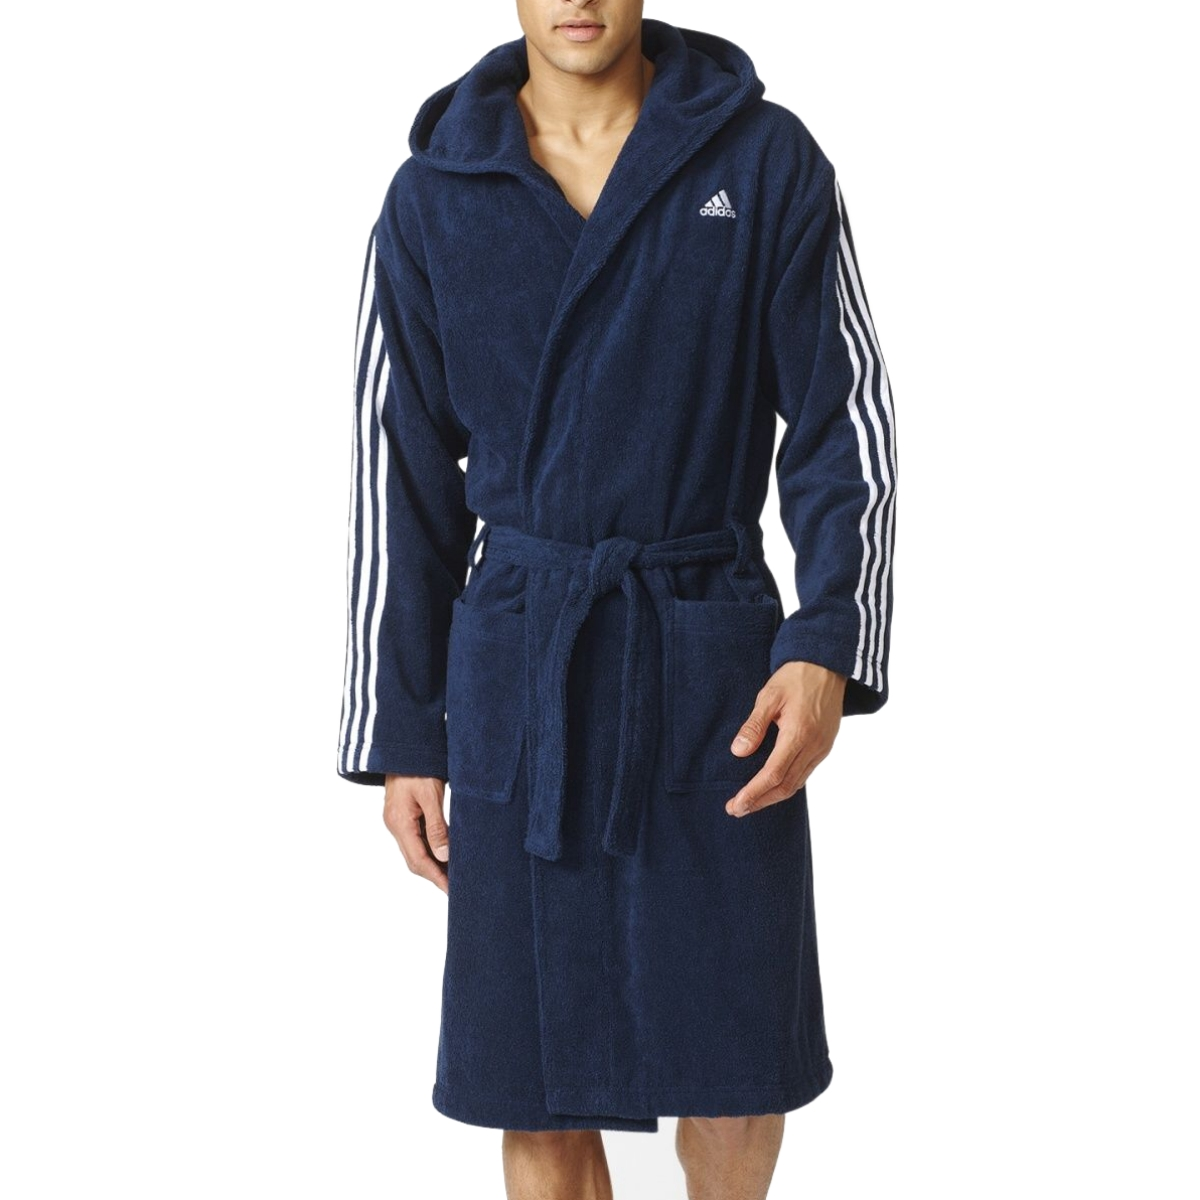 adidas 3 stripes bademantel collegiate navy herren ao0064 blau ebay. Black Bedroom Furniture Sets. Home Design Ideas